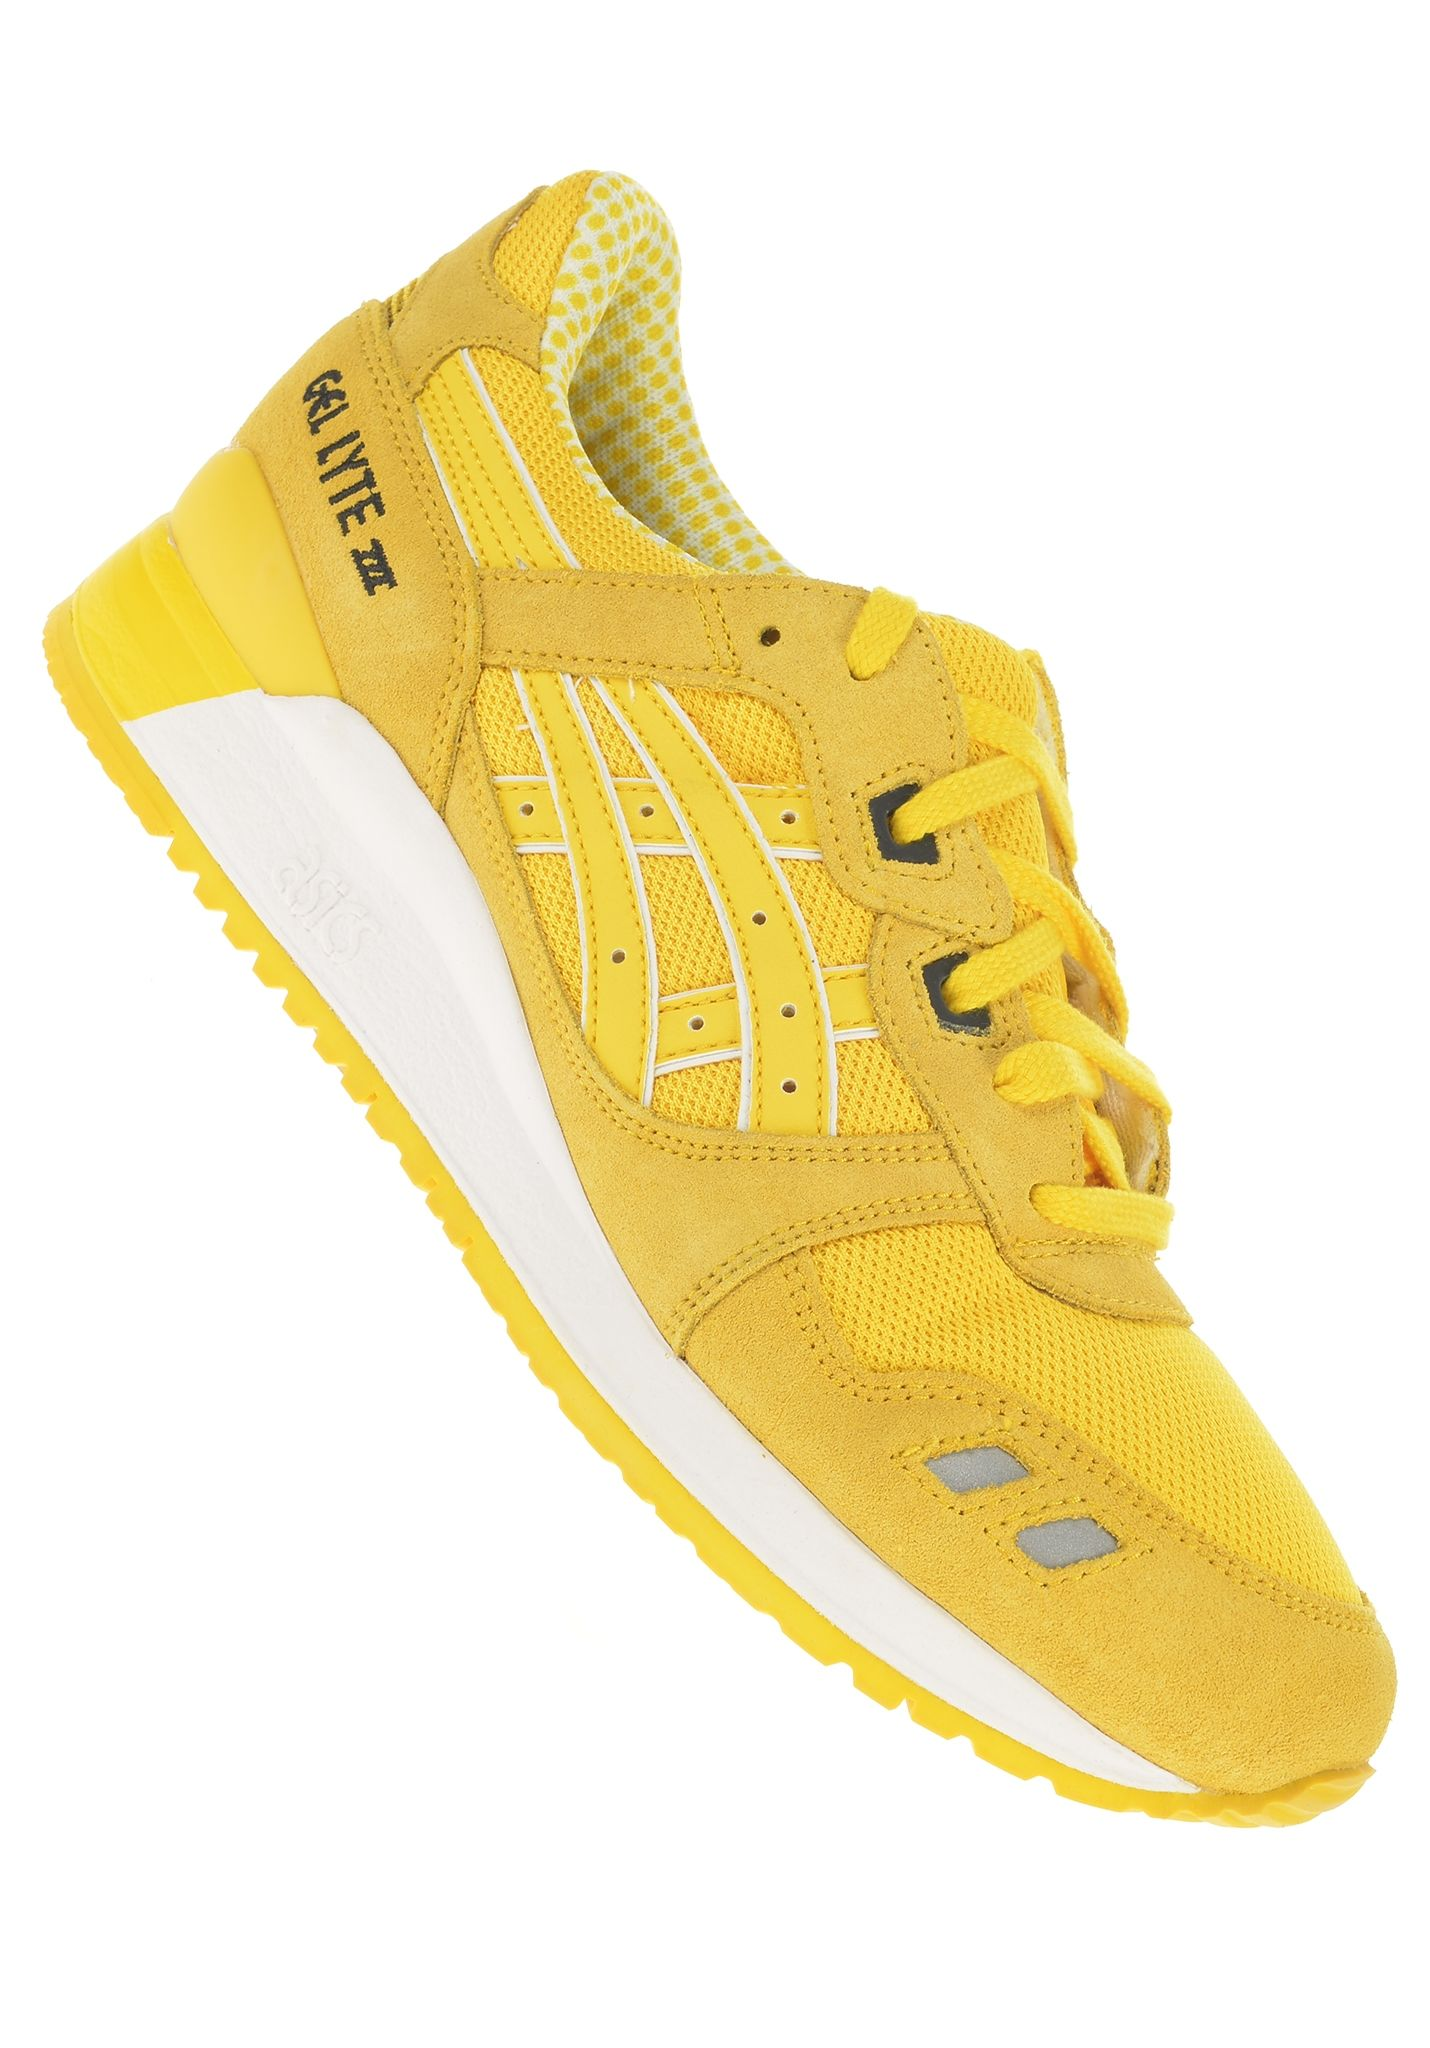 info for 78844 b8c2b Asics Gel Lyte Iii Gelb gibcam-service.de